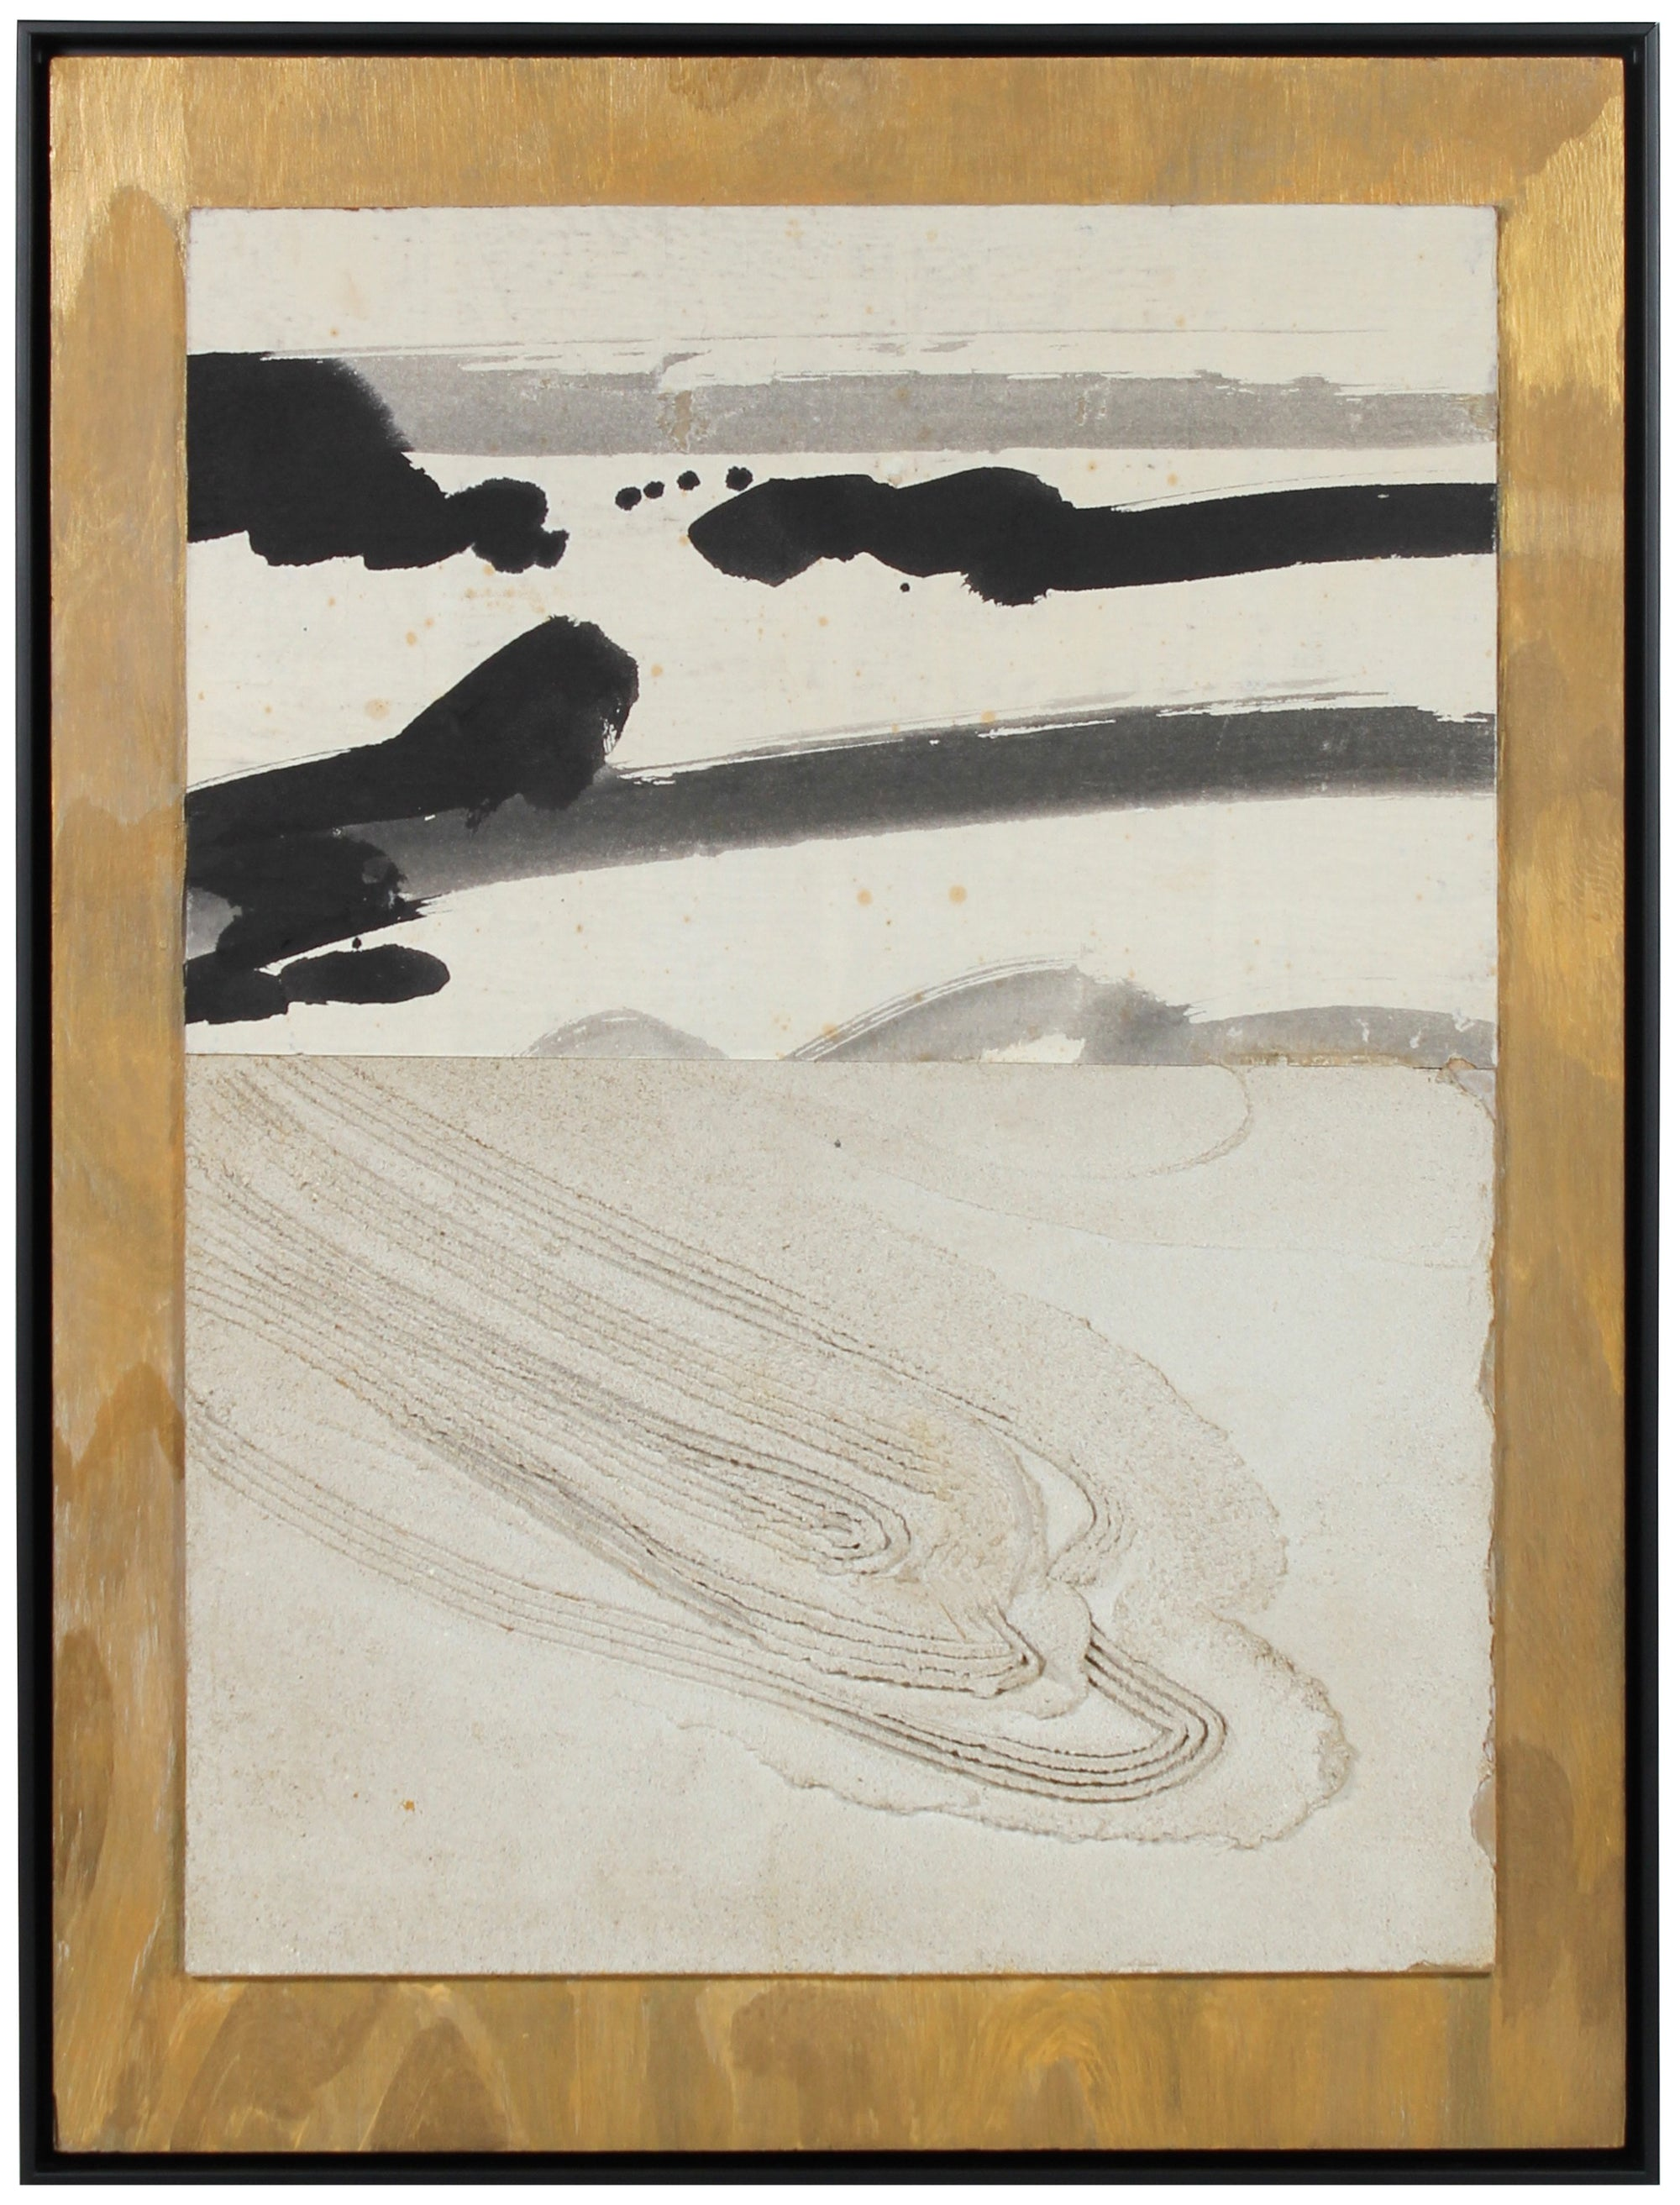 Deconstructed Landscape<br>Cement, Ink Wash & Metallic Paint<br><br>#55850